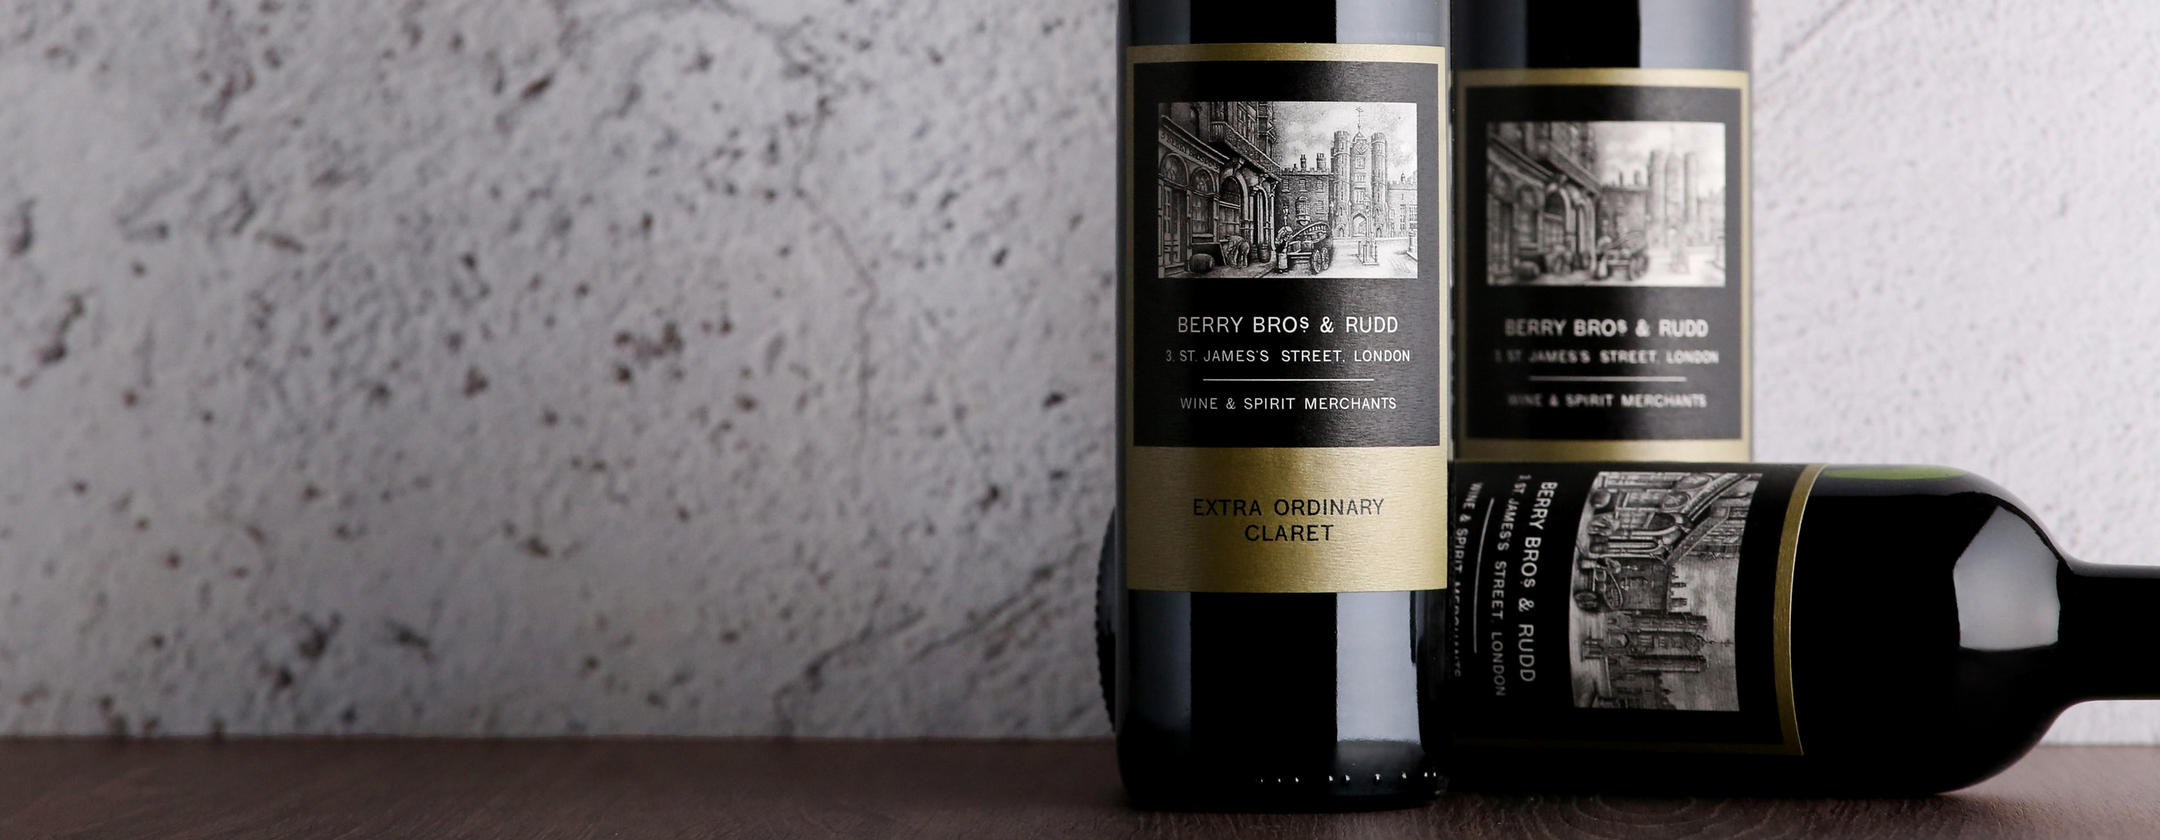 Beyond good _ The new vintage of our Extra Ordinary Claret